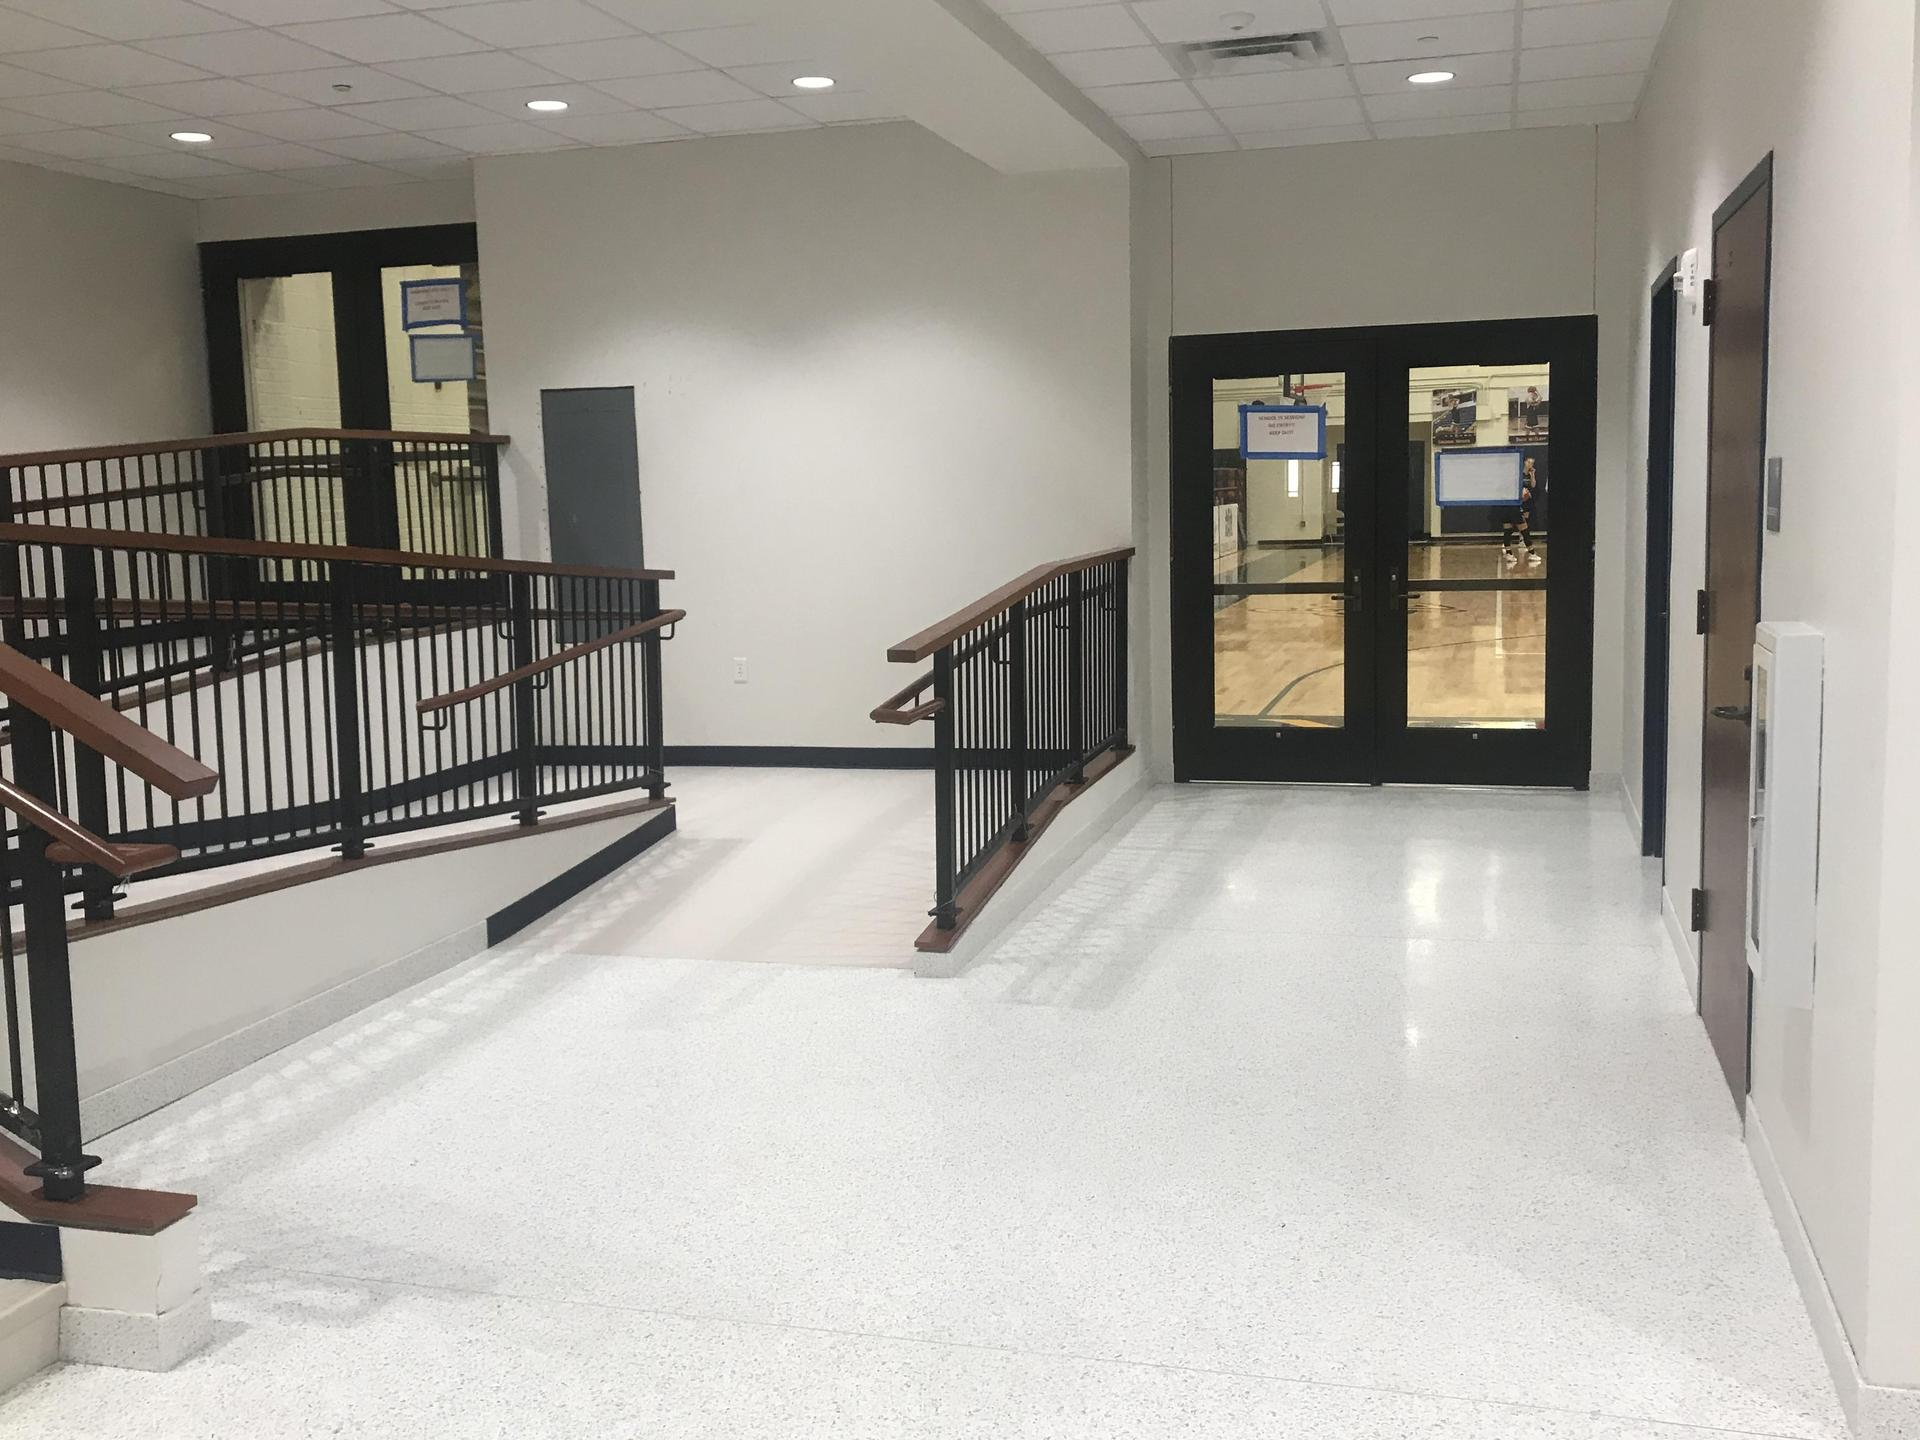 HPHS new entry ramp into Basketball gym